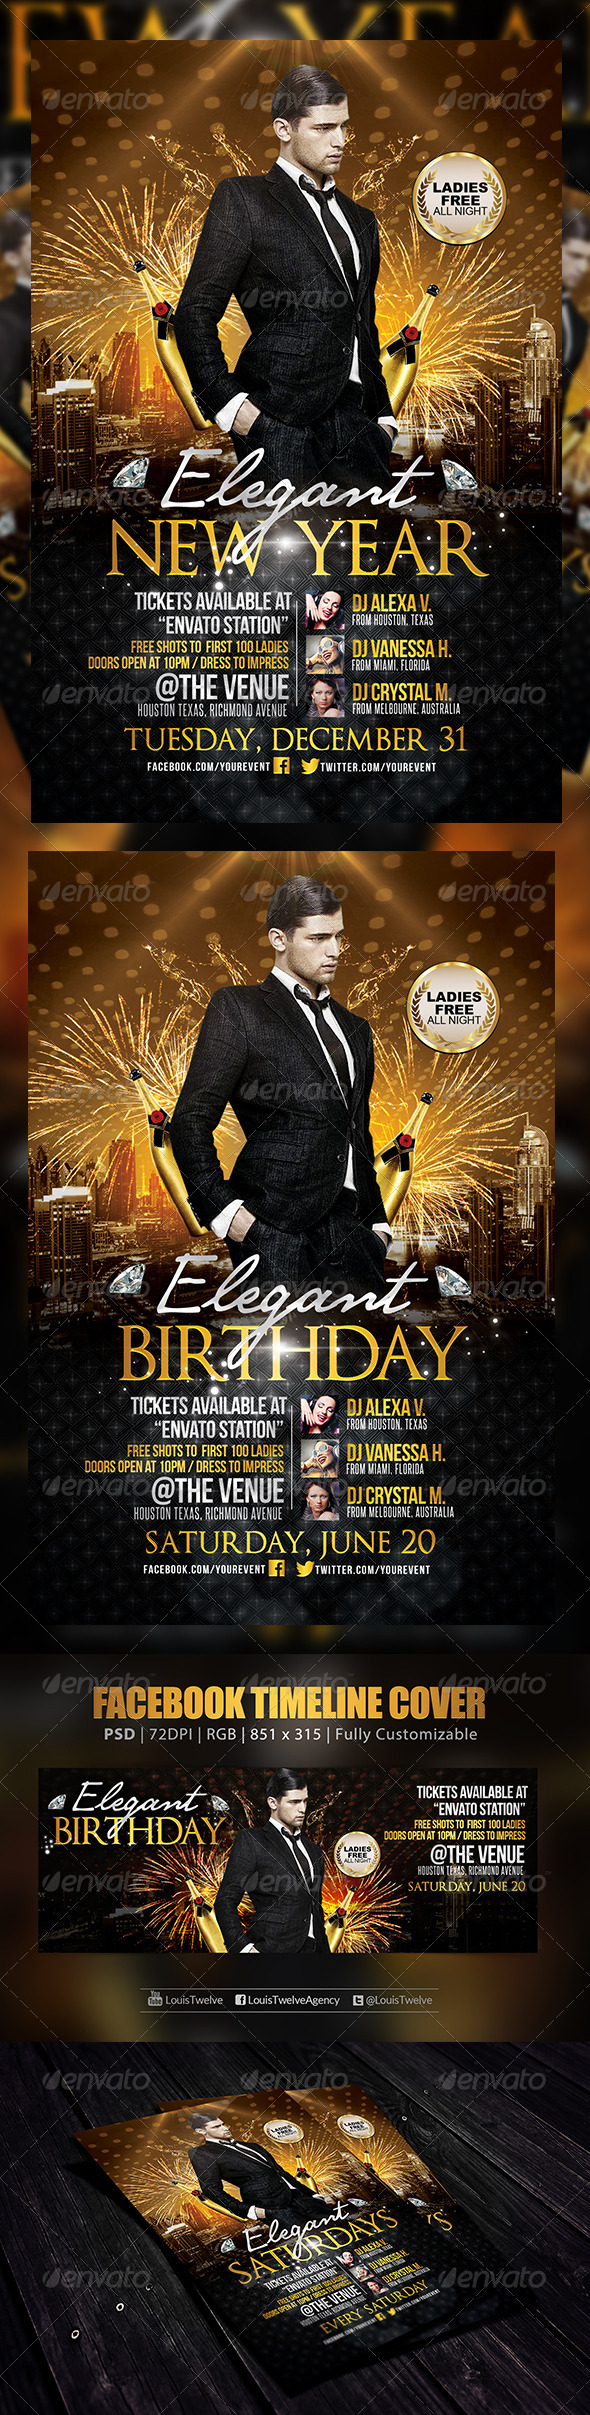 Elegant Birthday or New Year | Flyer + FB Cover - Clubs & Parties Events